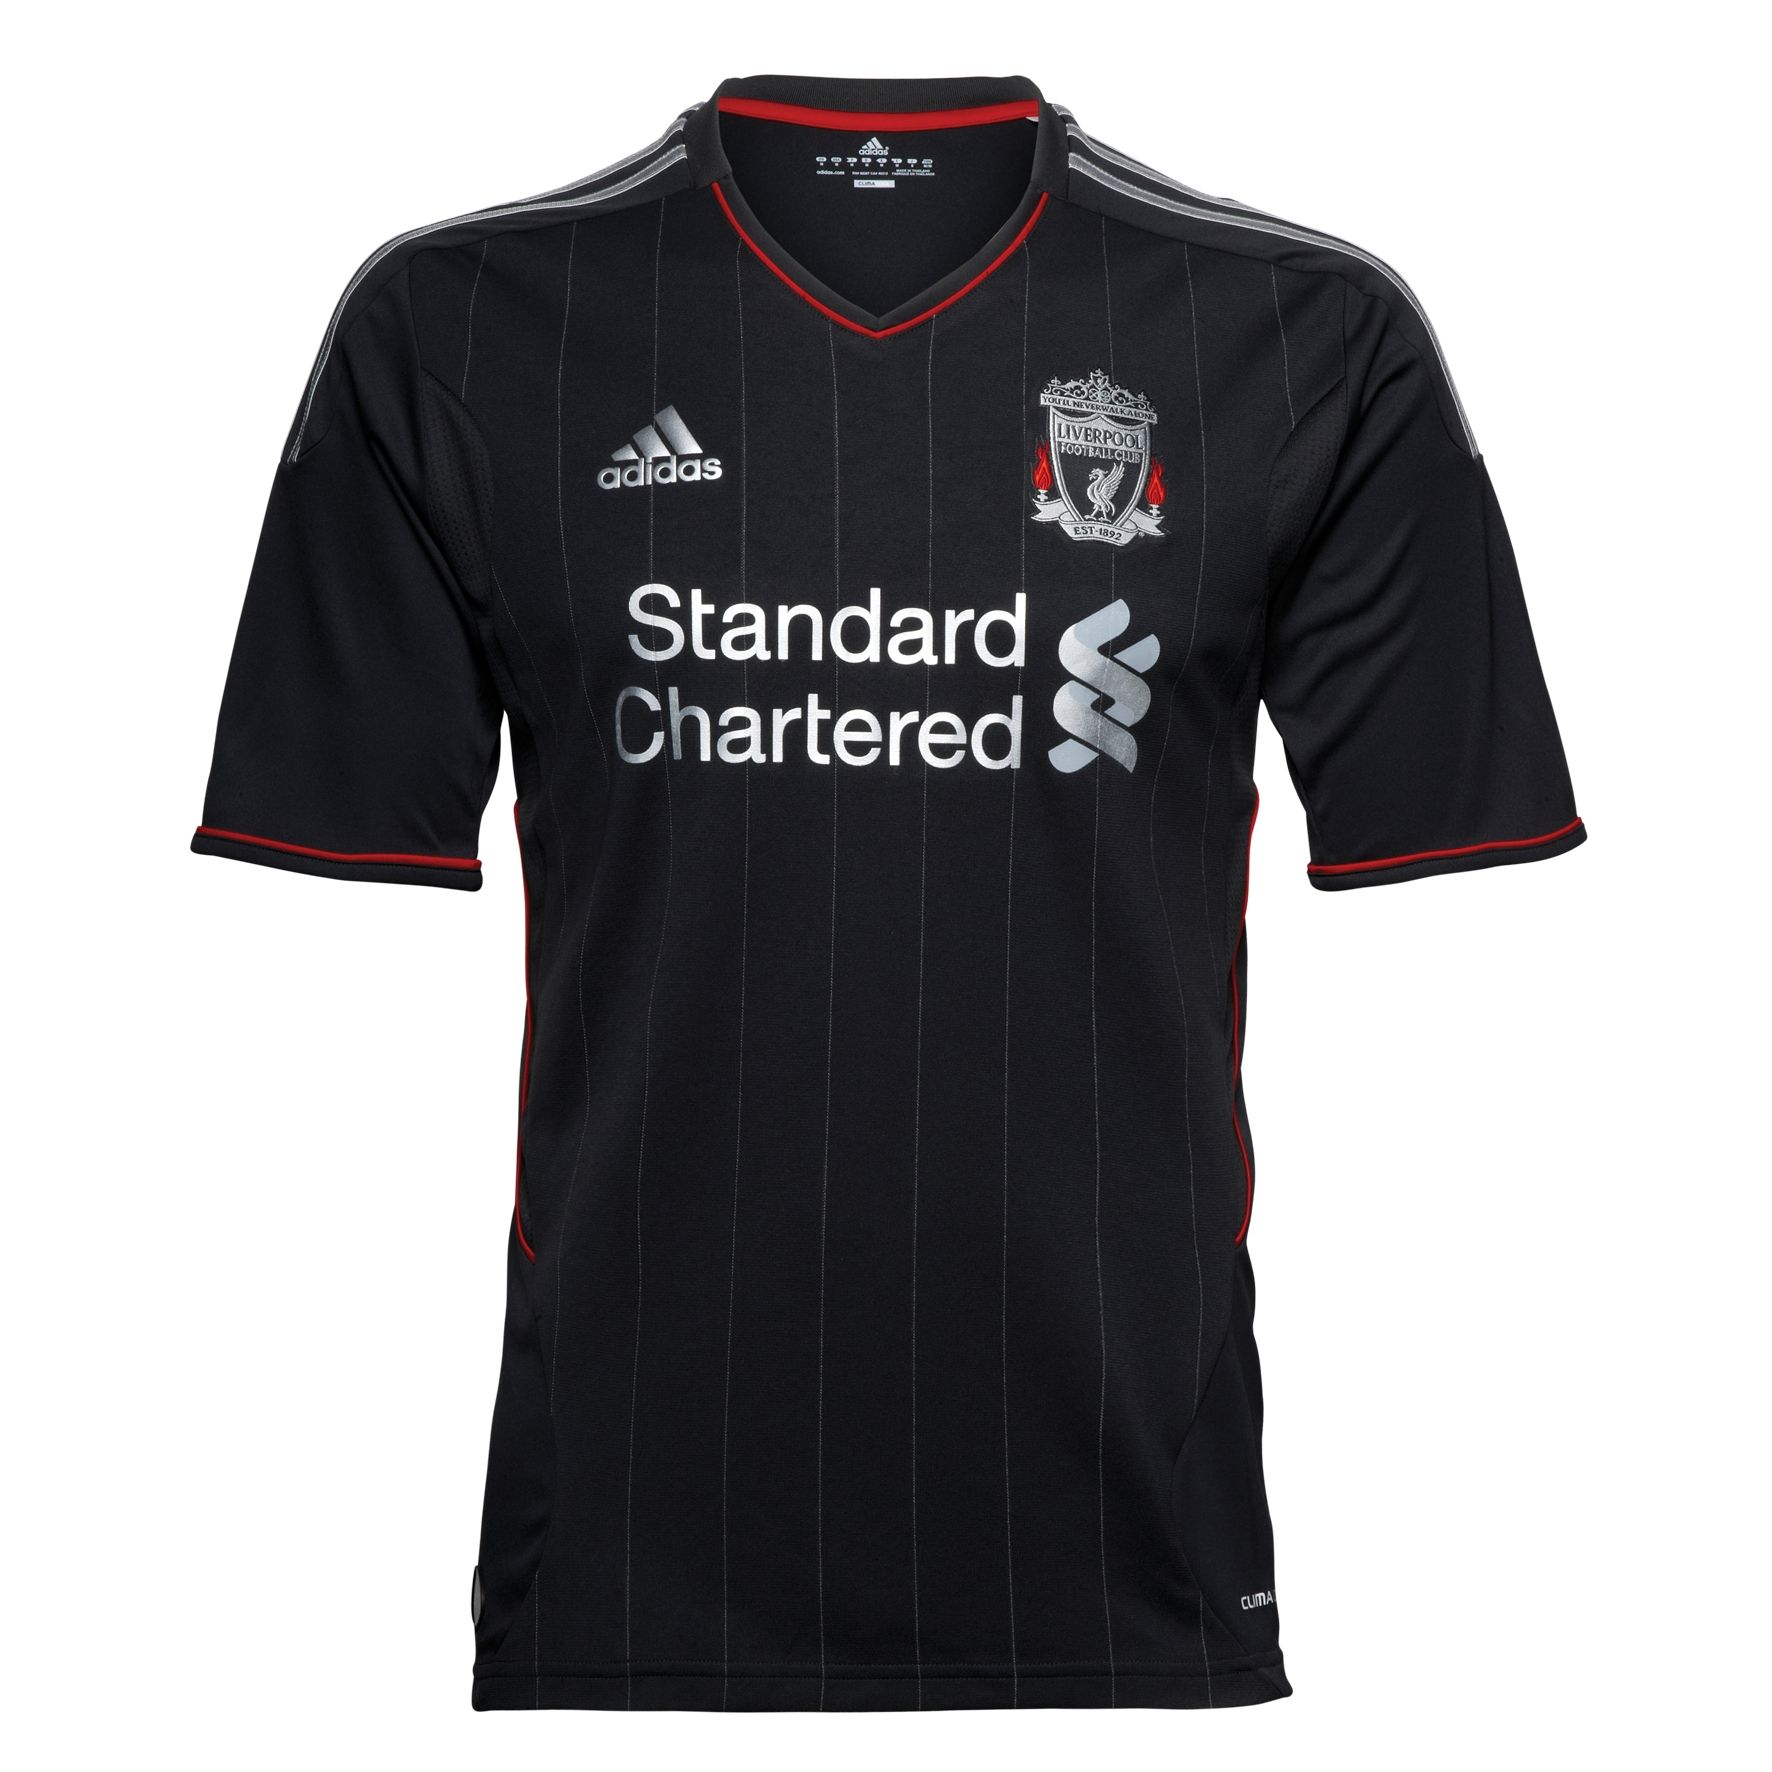 4f714b51411 Liverpool 11-12 Away Shirt  Adidas V13870